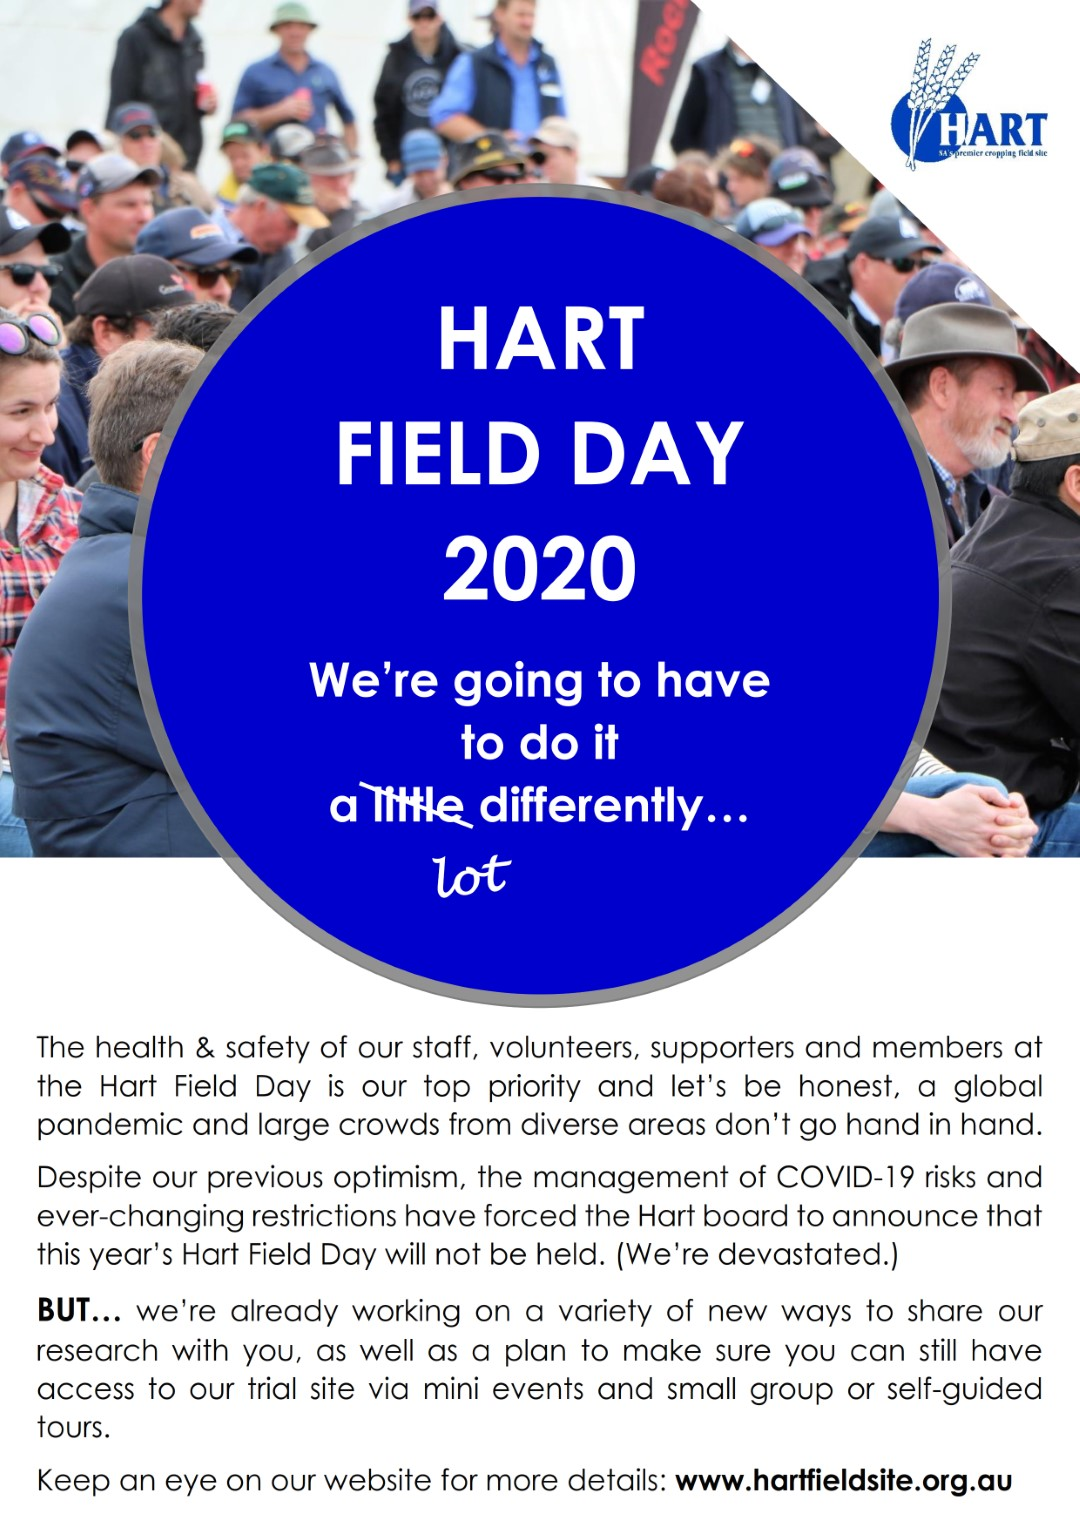 Hart Field Day 2020 - it's going to look a little different